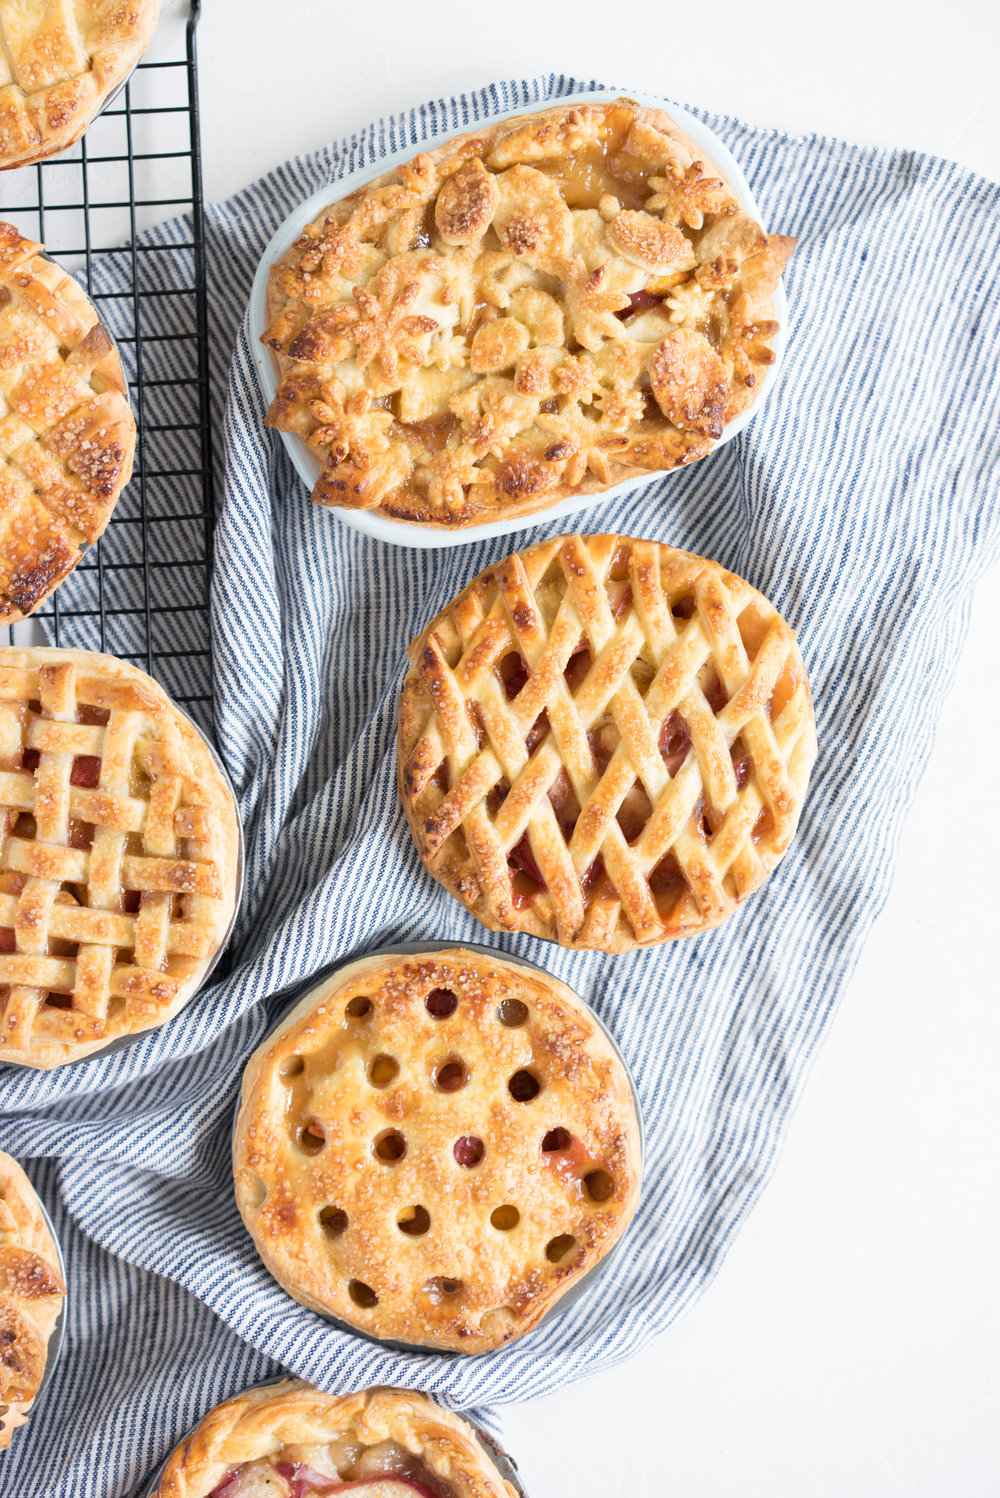 Mini peach pies - individual peach pies, perfect for a picnic, bbq, or summer dessert